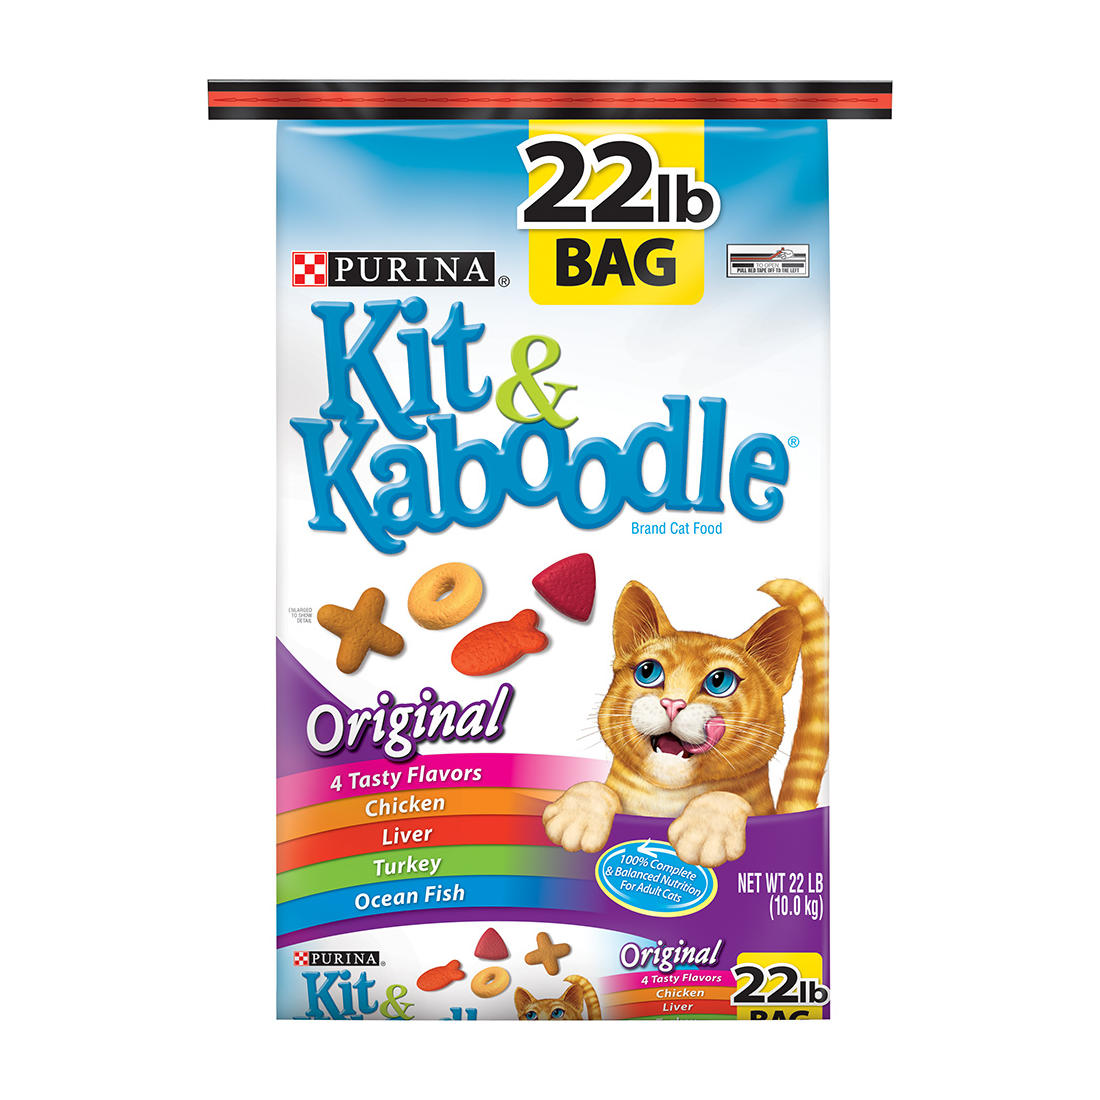 Purina Kit & Kaboodle Original Cat Food, 22 lbs.